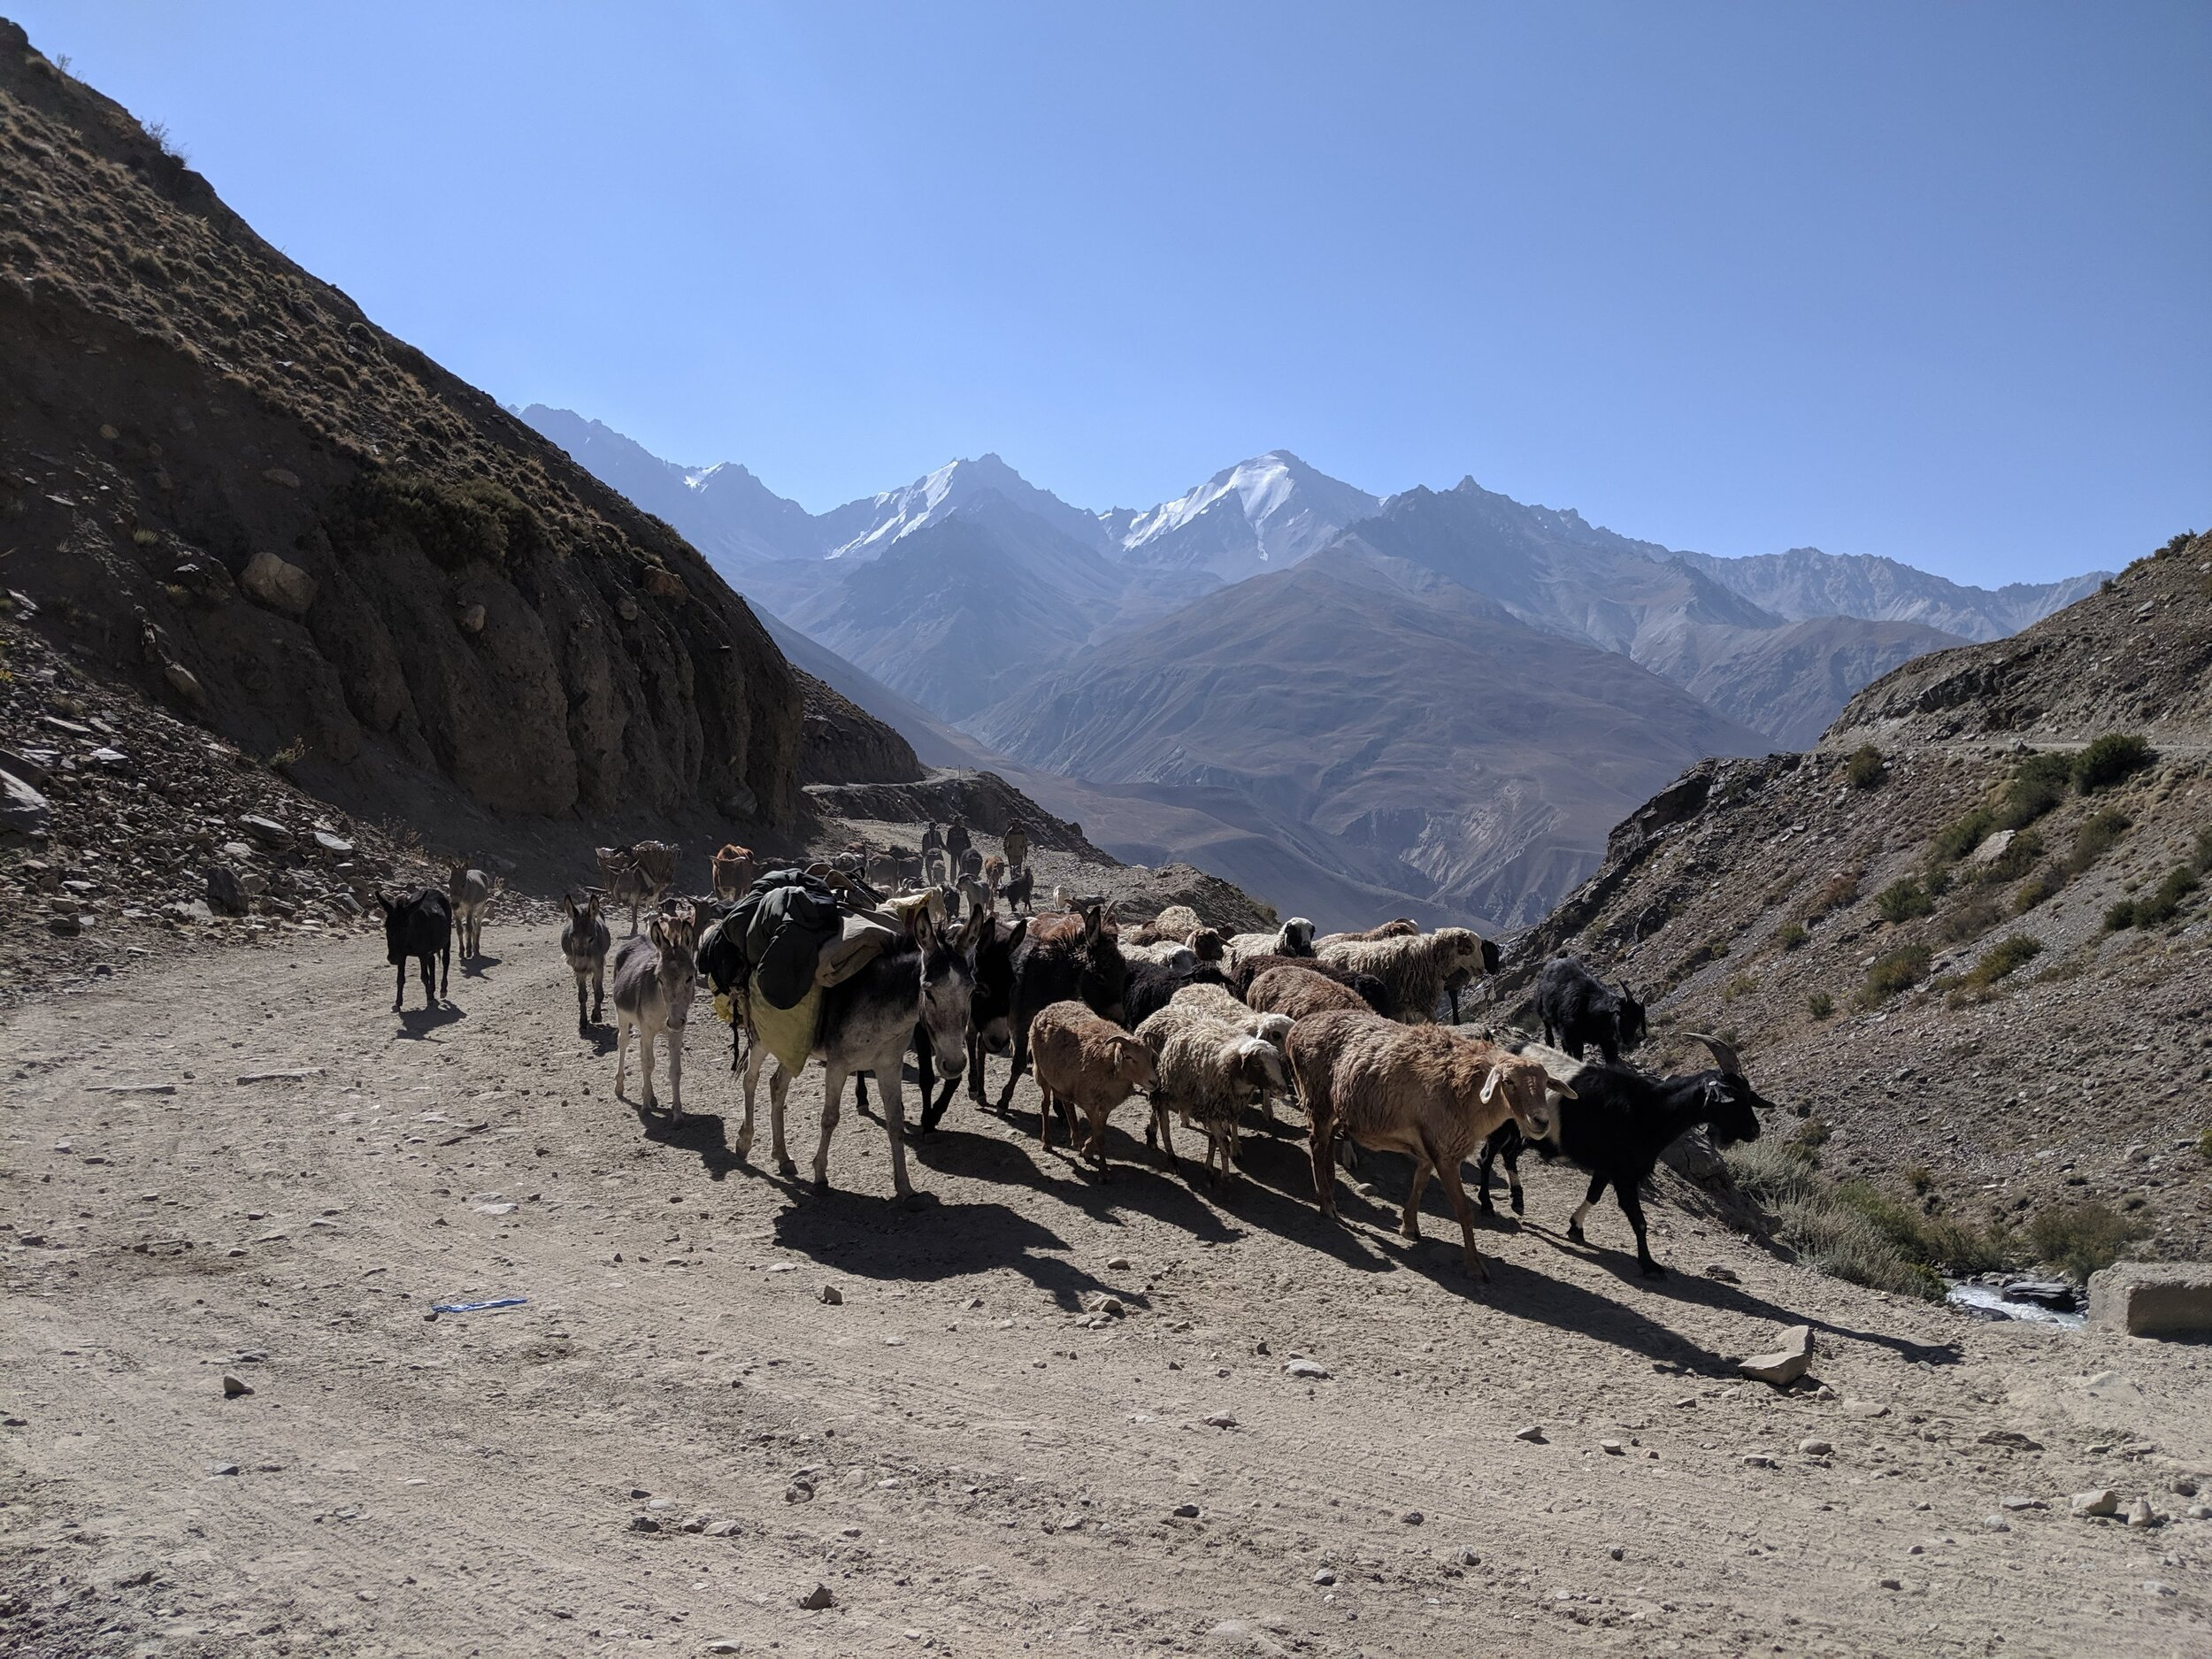 Much more vigilance was required while riding in the Wakhan Valley. PHOTO: JACK EWING